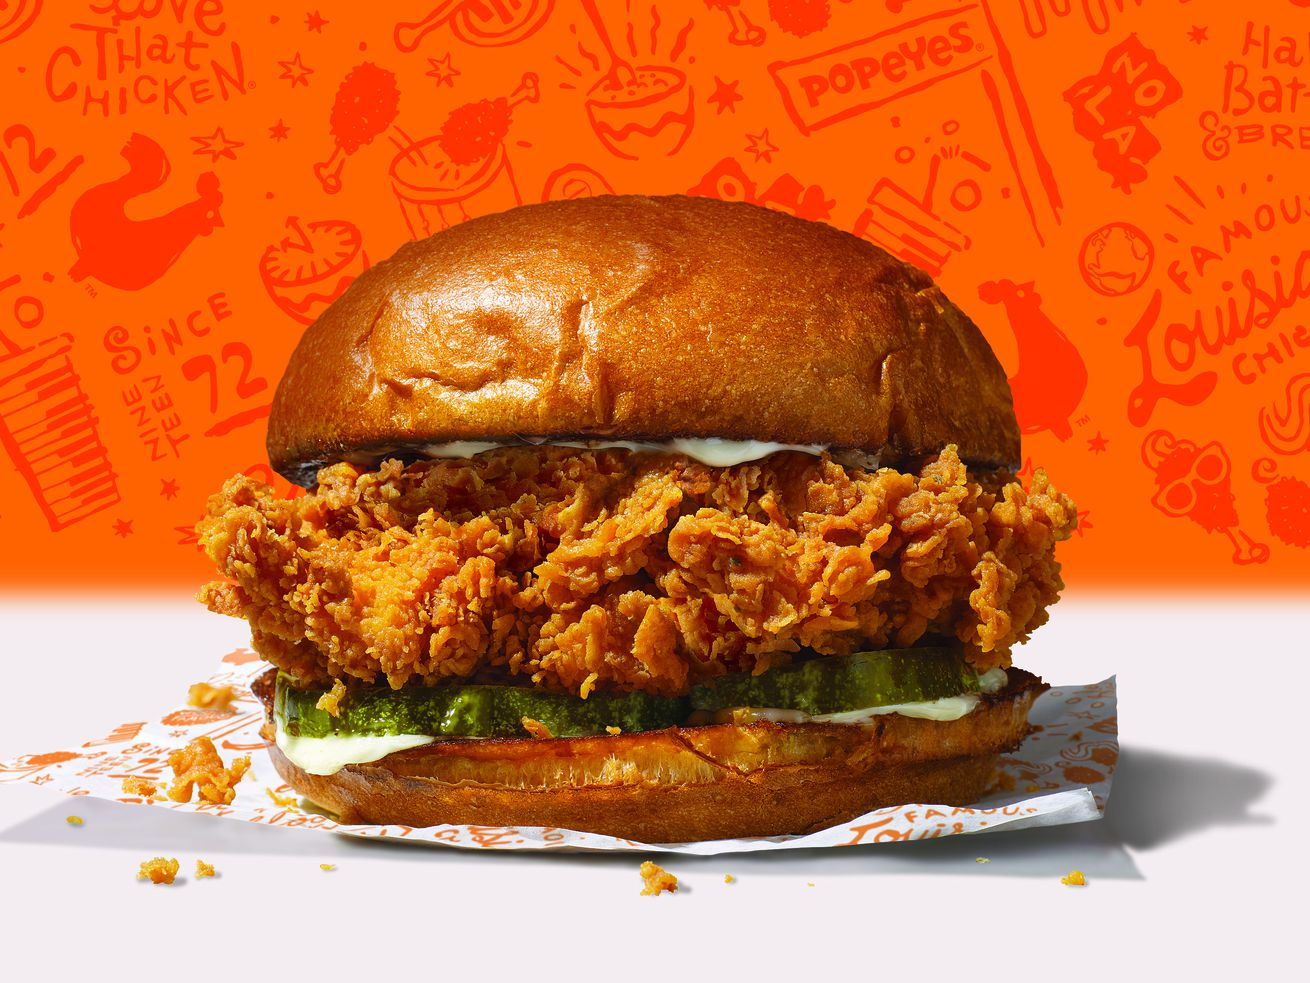 Popeyes Launches Fried Chicken Sandwich by Teaming Up With Restaurant That Ripped Them Off